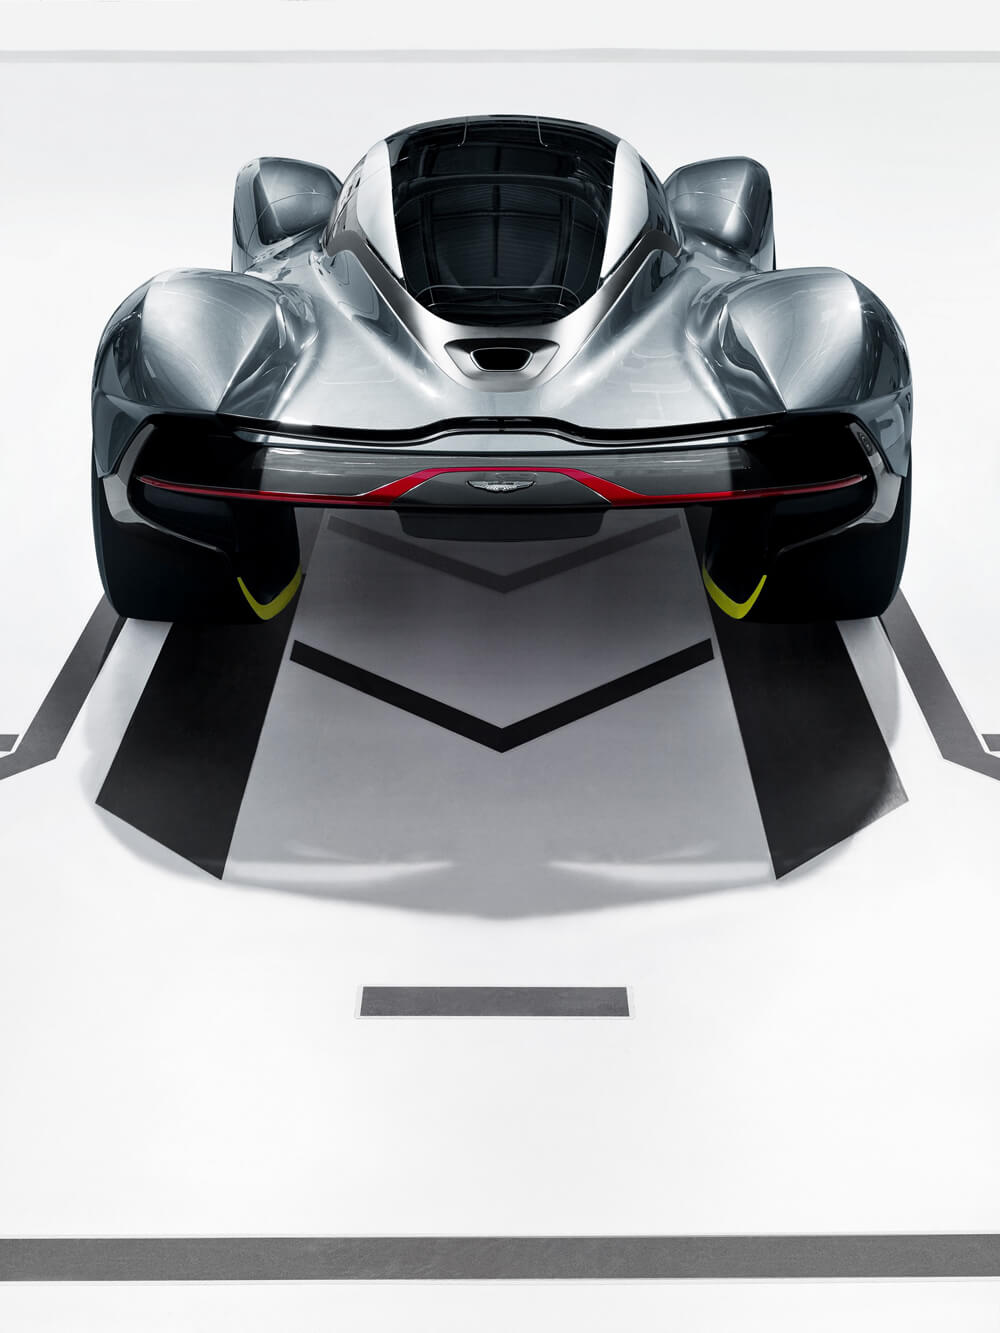 aston-martin-red-bull-racing-reveal-rb-001-hypercar-2